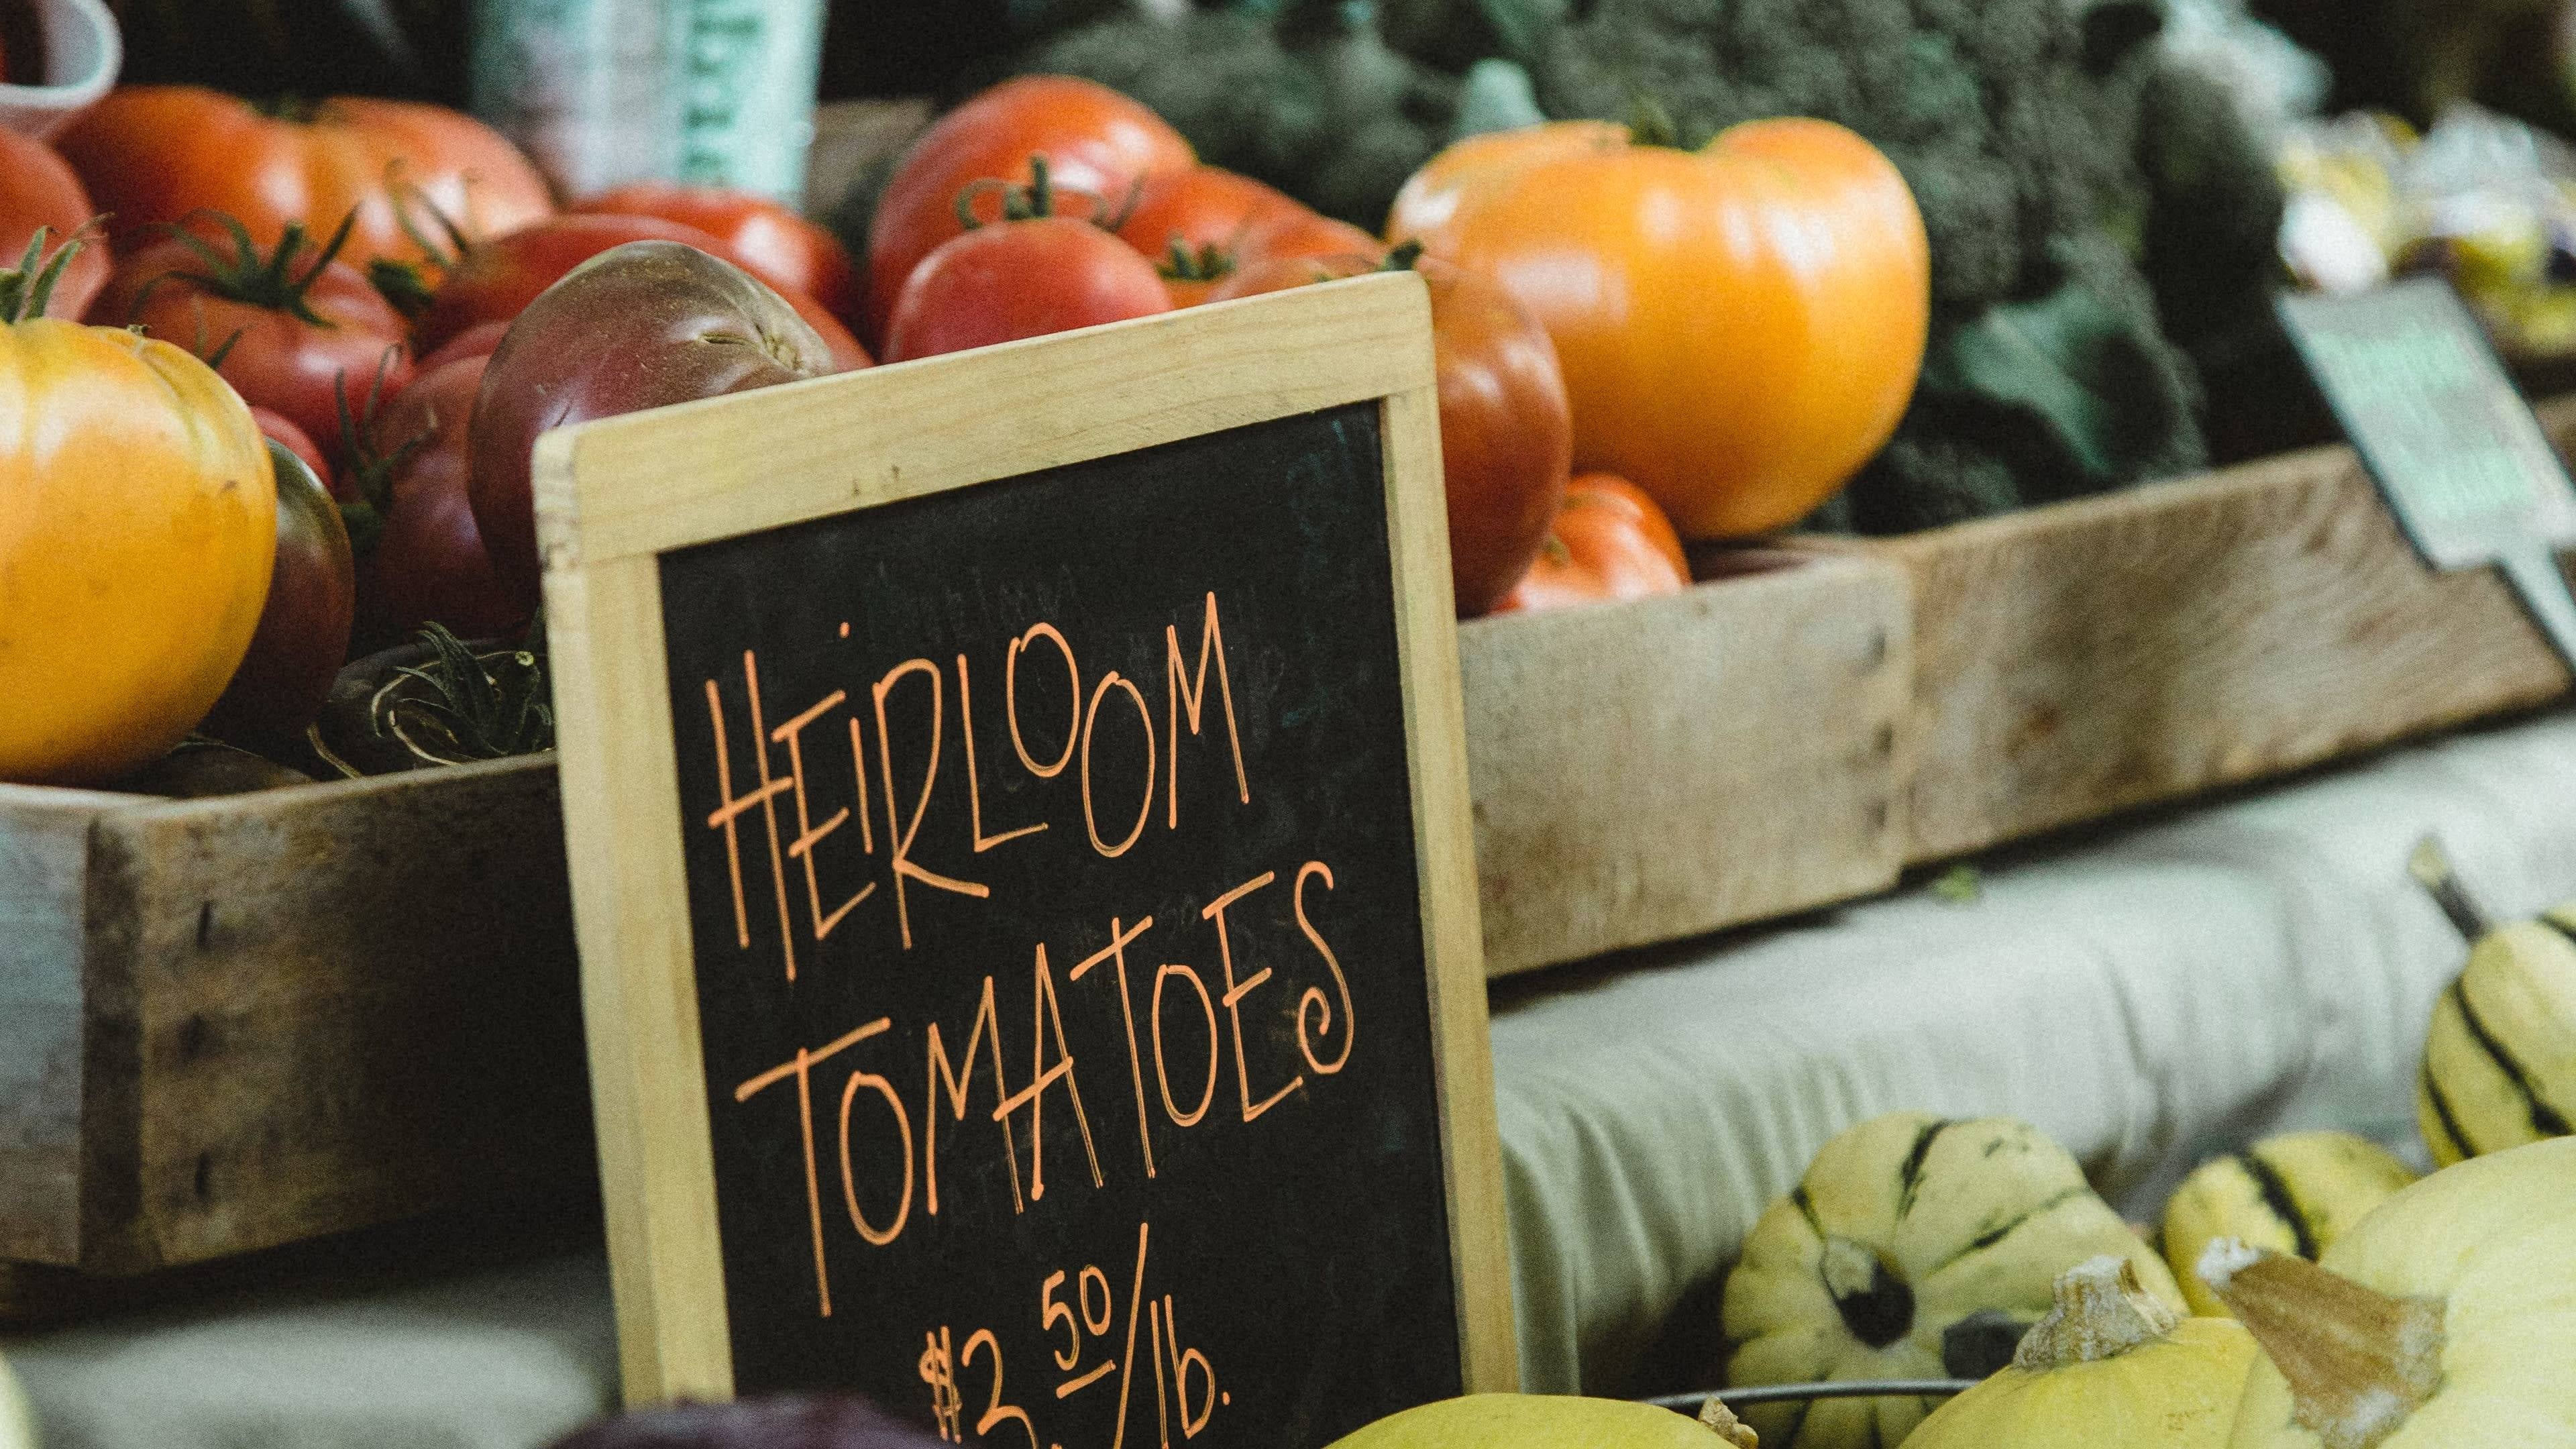 What To Do When You Inevitably Buy Crappy Tomatoes